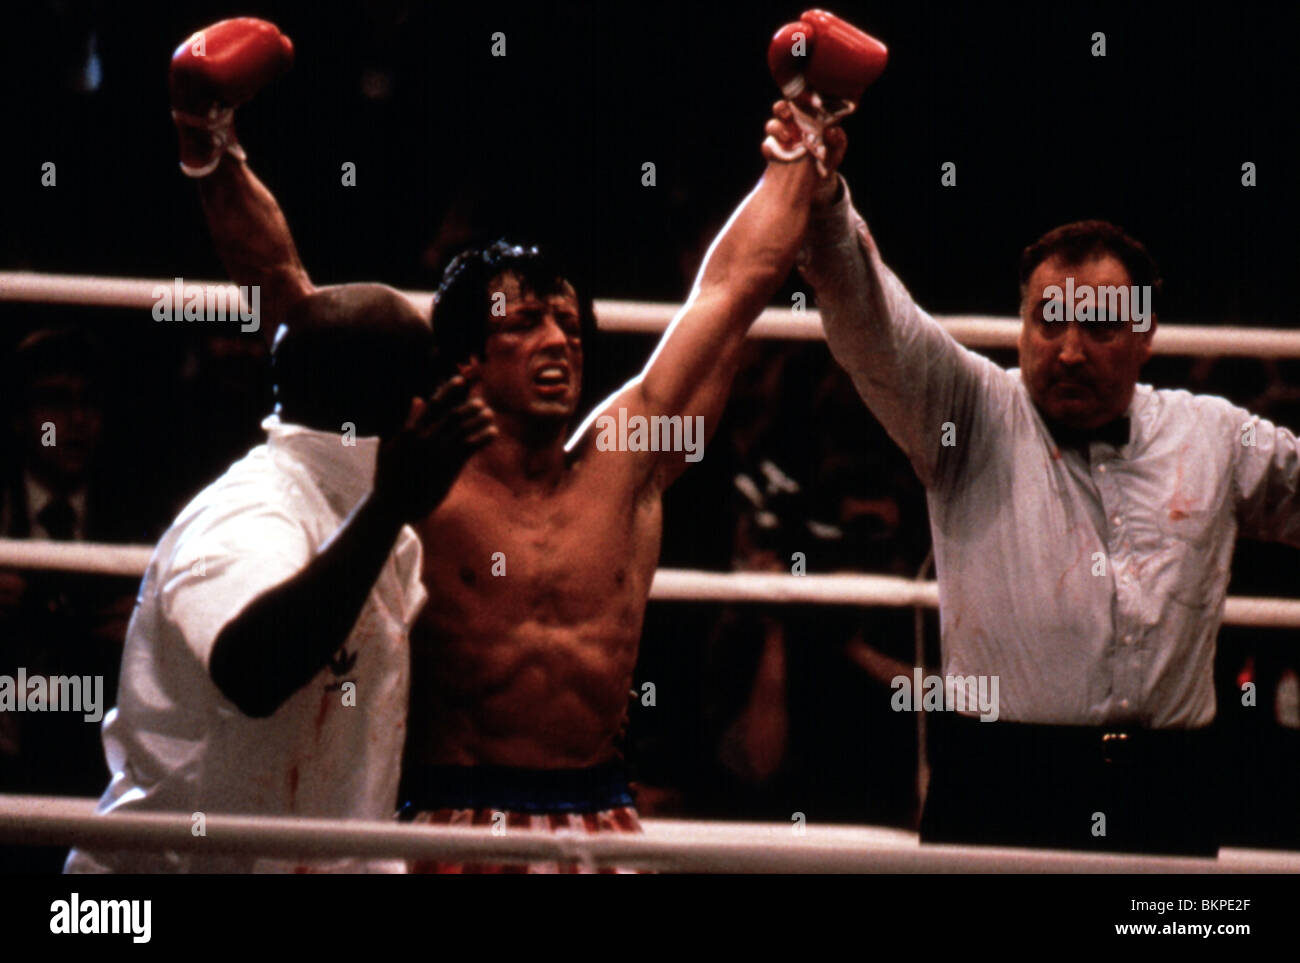 ROCKY IV (1985) SYLVESTER STALLONE RK4 077 - Stock Image